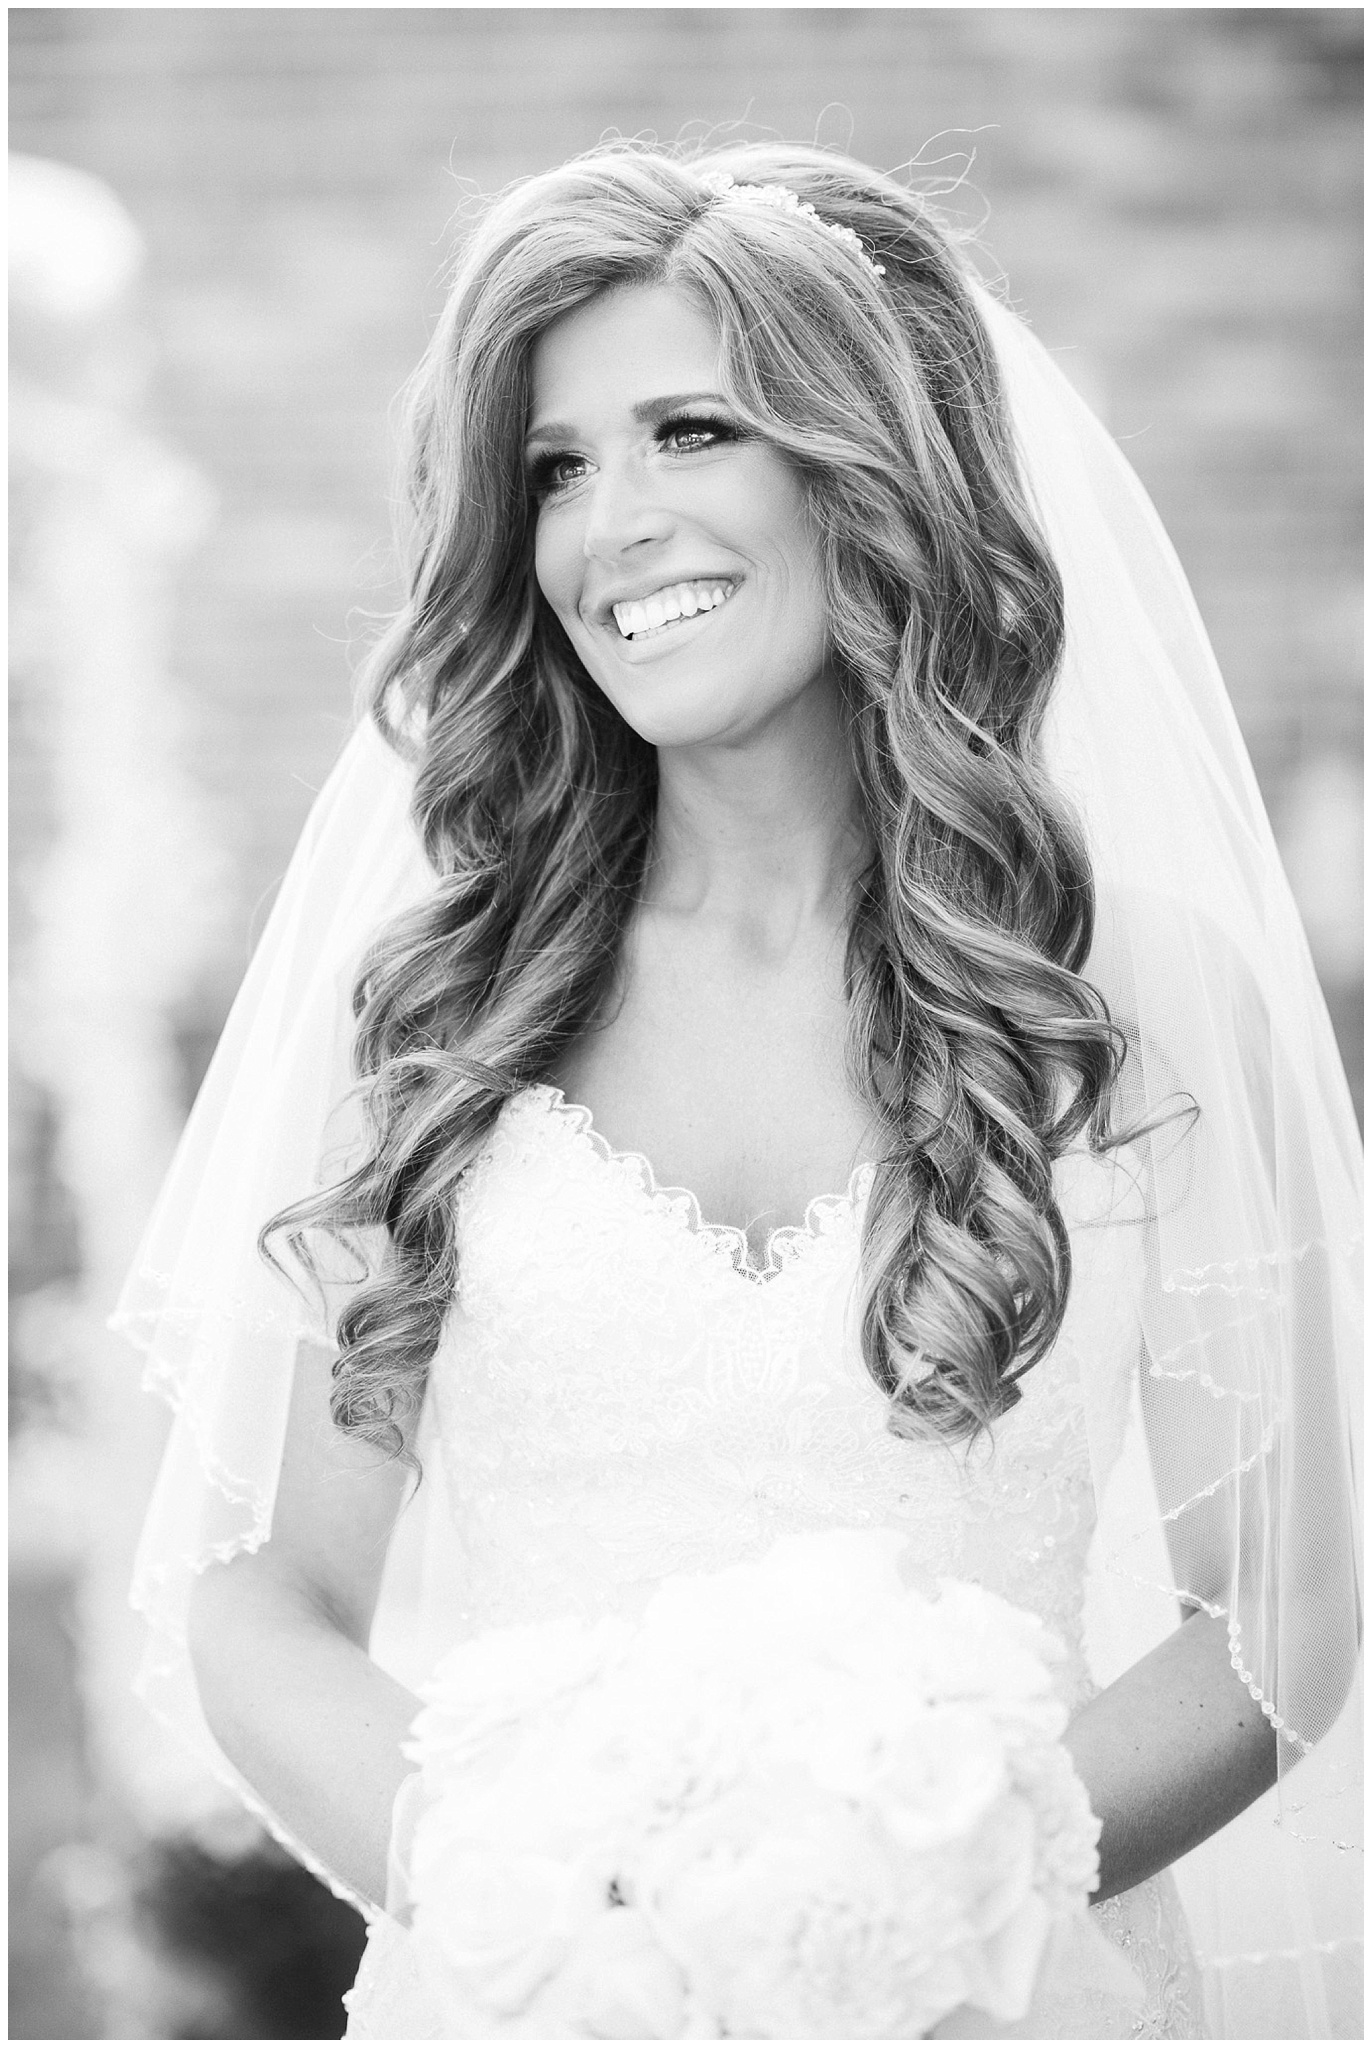 Bride in Maggie Sottero gown photographed by Jenn Kavanagh Photography